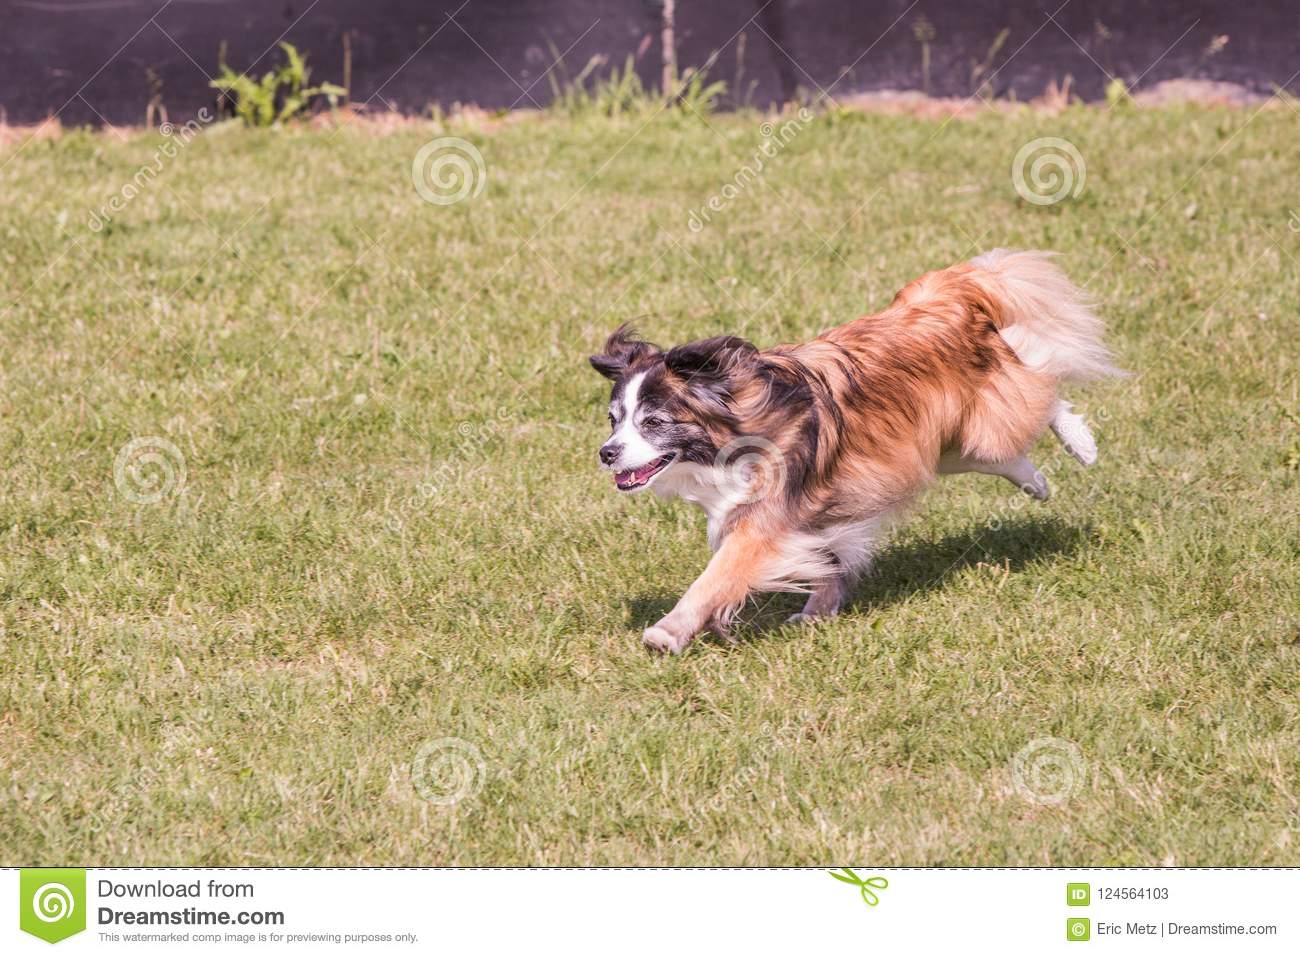 Continental Toy Spaniel dog living in belgium